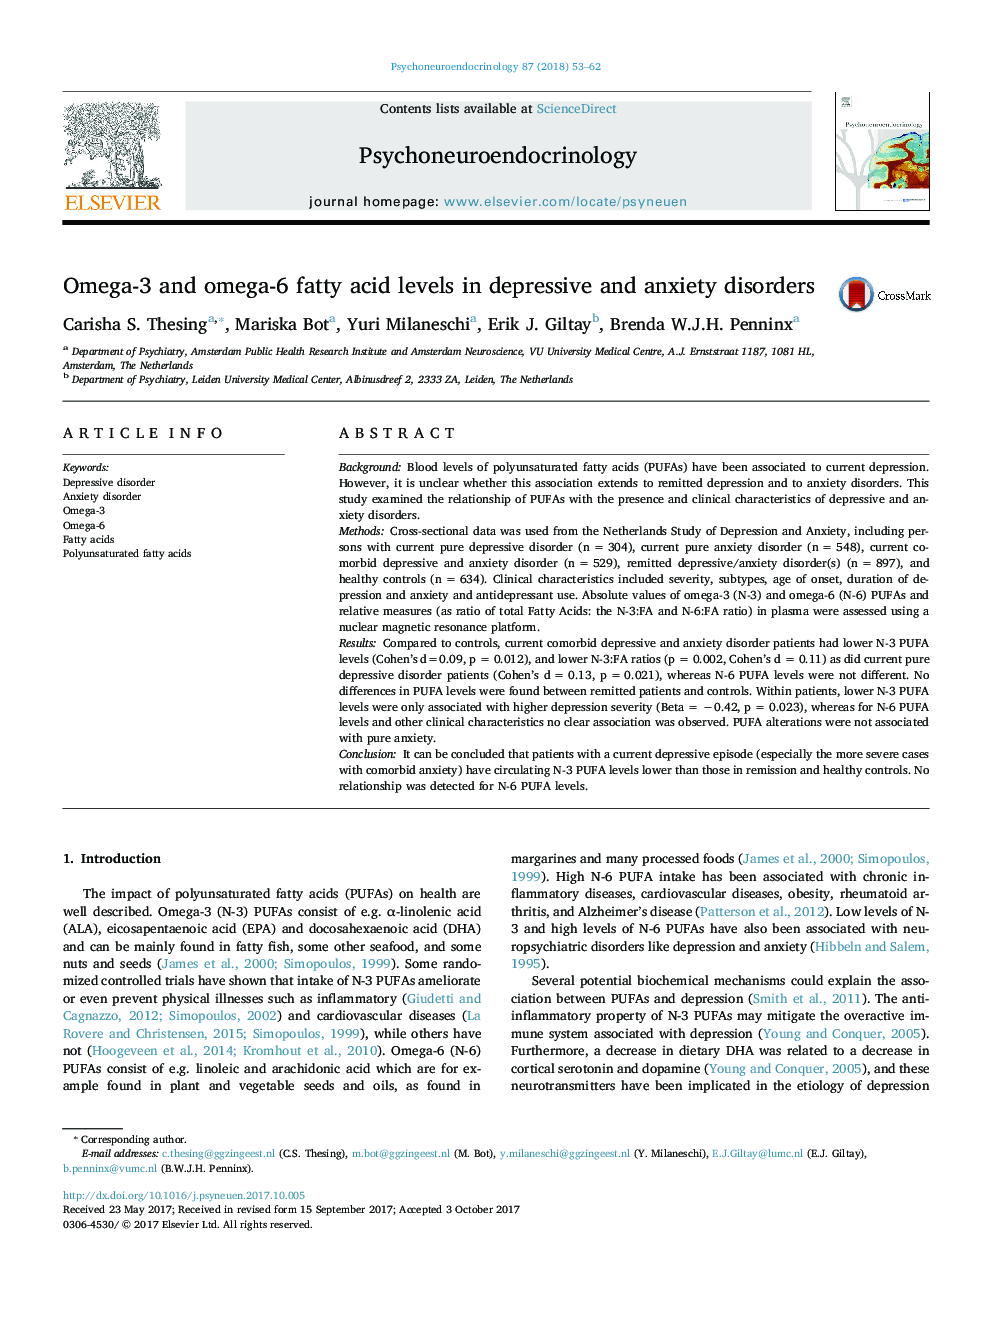 Omega-3 and omega-6 fatty acid levels in depressive and anxiety disorders